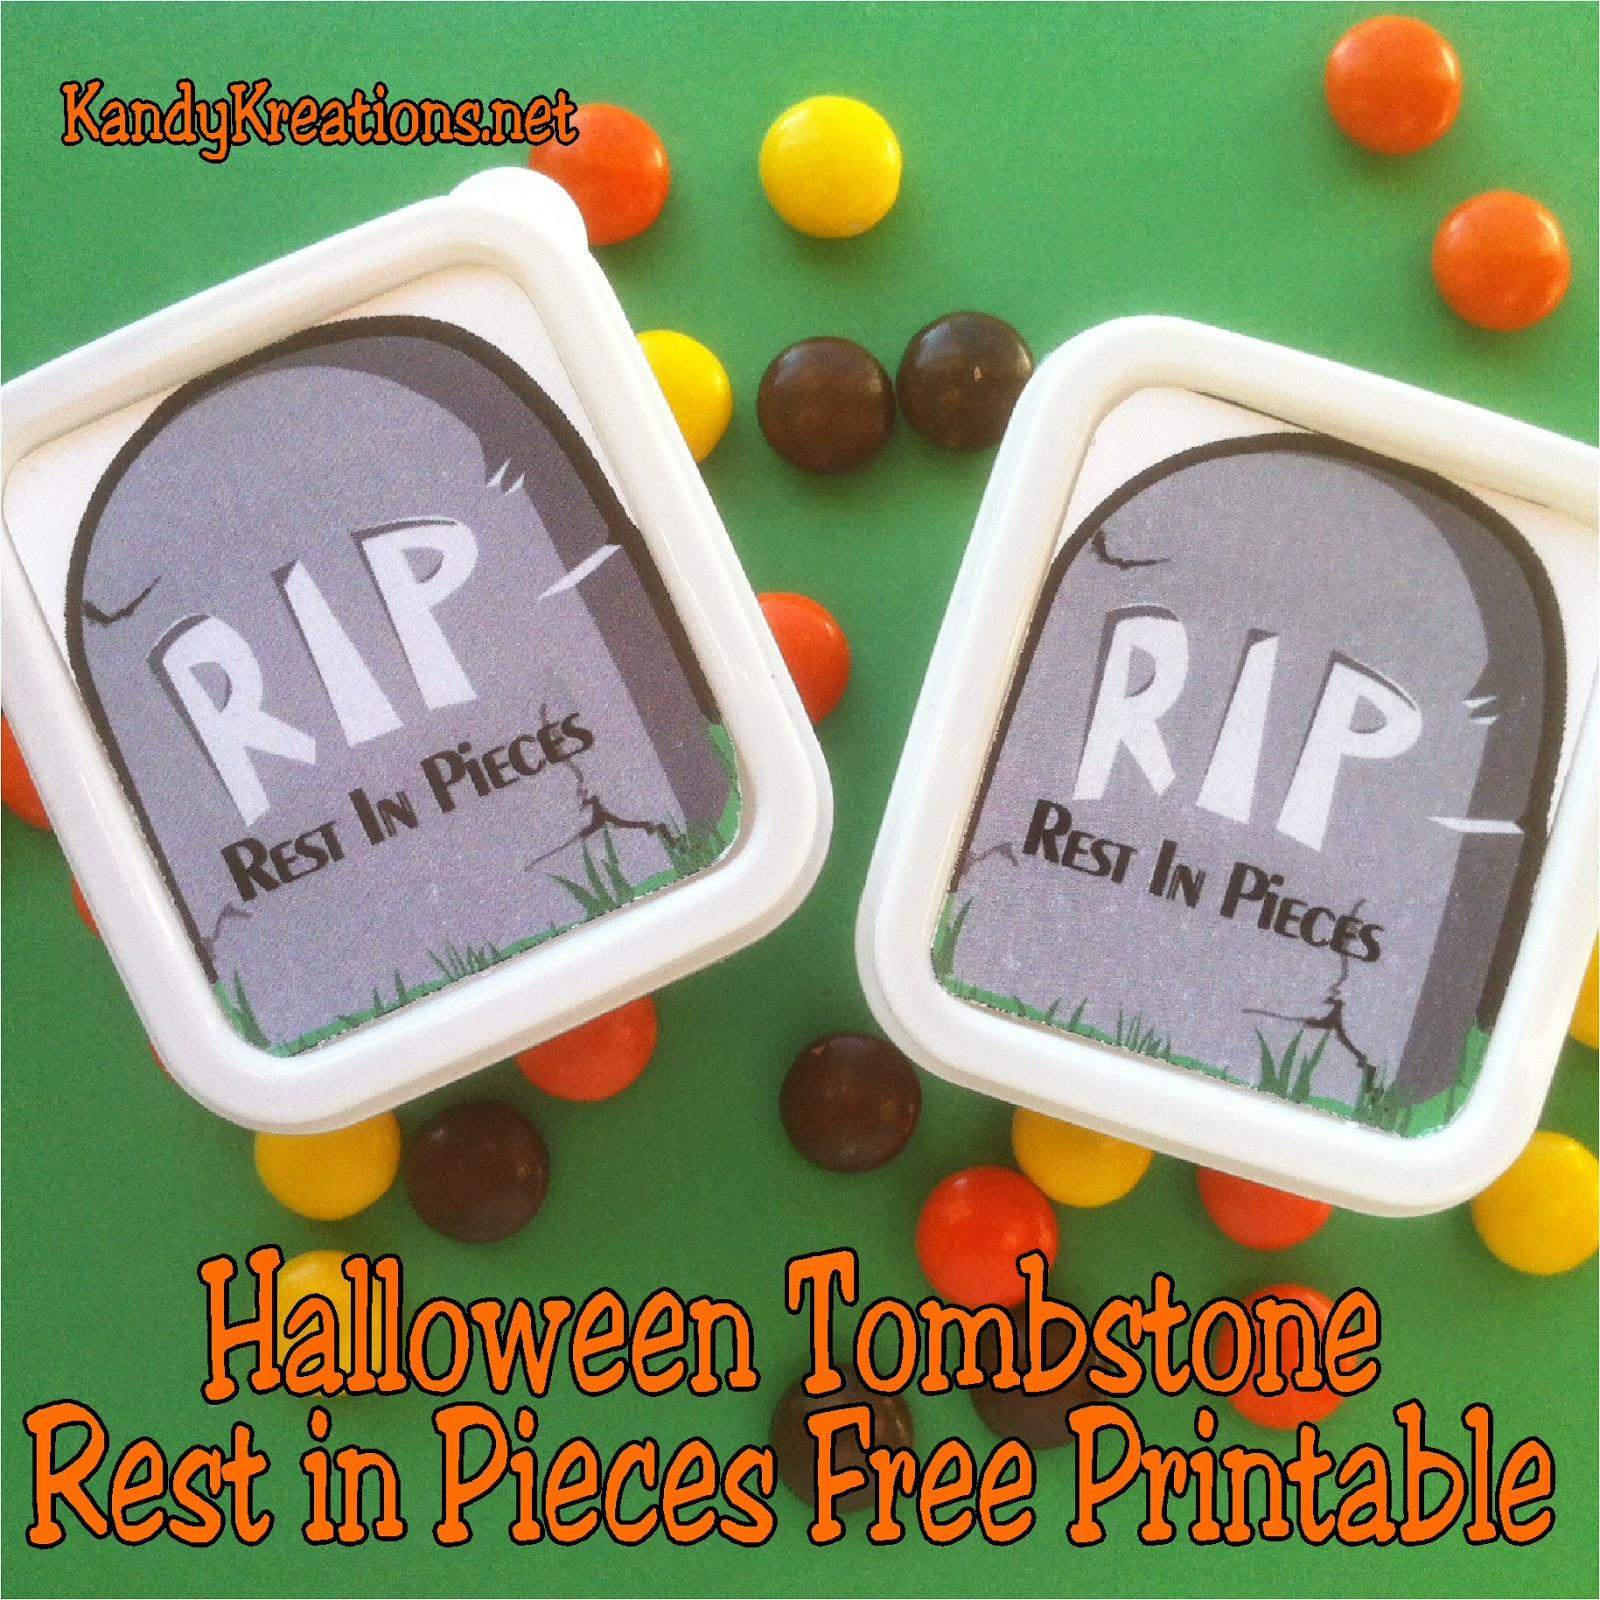 Celebrate with all your ghouls this Halloween using this Rest in Pieces candy box free printable.   You won't mind visiting your Halloween Tombstone when it's filled with Reeses Pieces candies and is so cheap and easy to make.